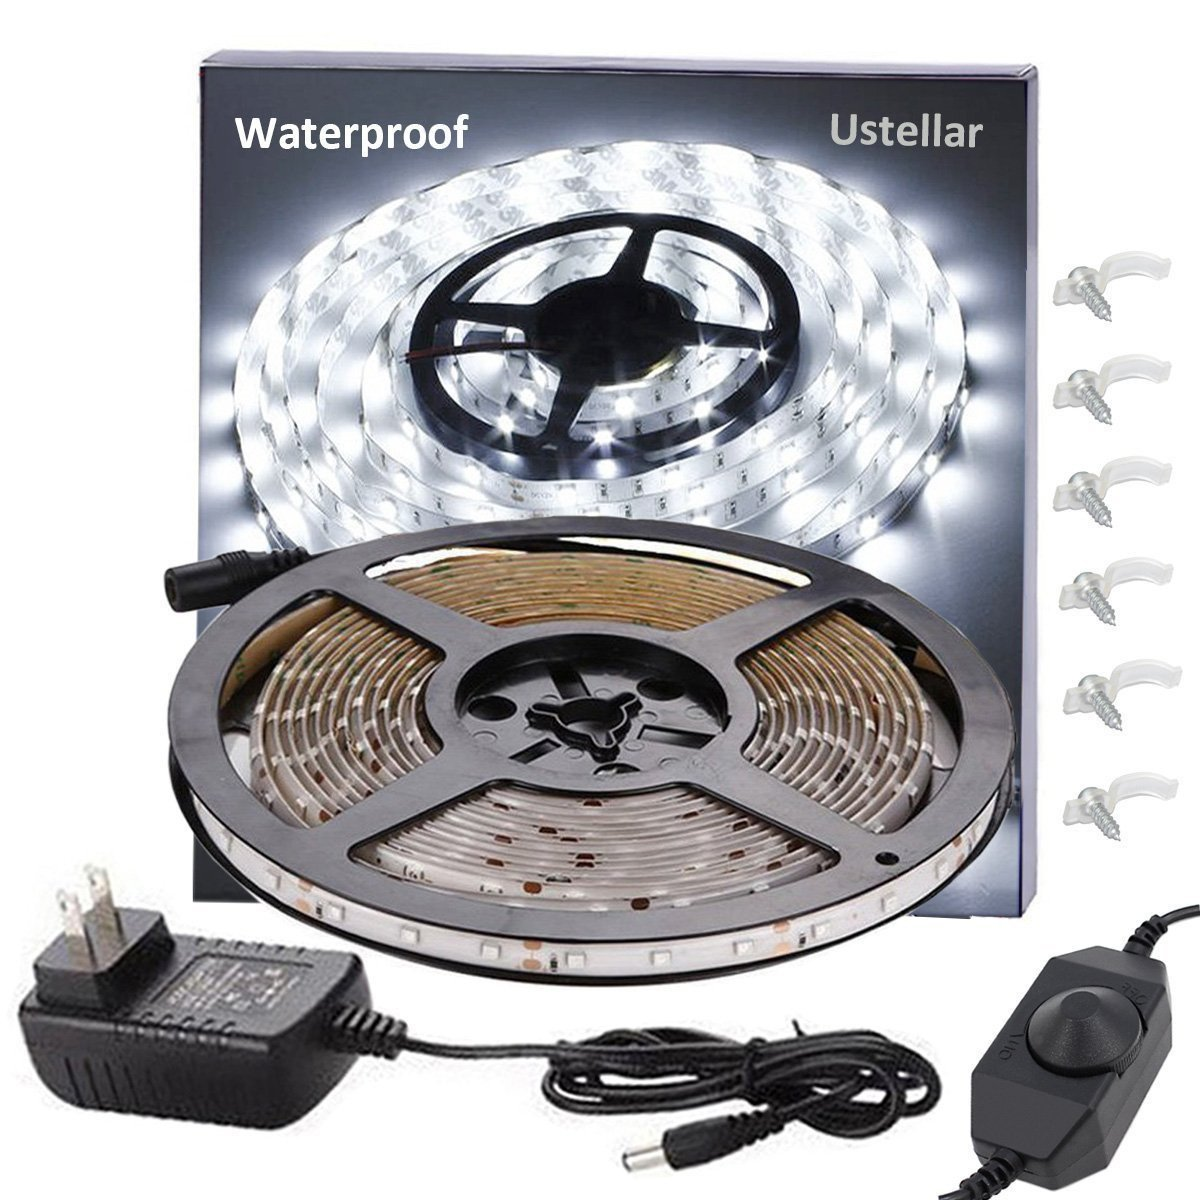 Ustellar Dimmable Waterproof LED Light Strip Kit, 300 Units SMD 2835 LEDs, 6000K Daylight White 12V LED Tape, Led Ribbon, 16.4ft/5m Lighting Strips with UL Listed Power Supply by Ustellar